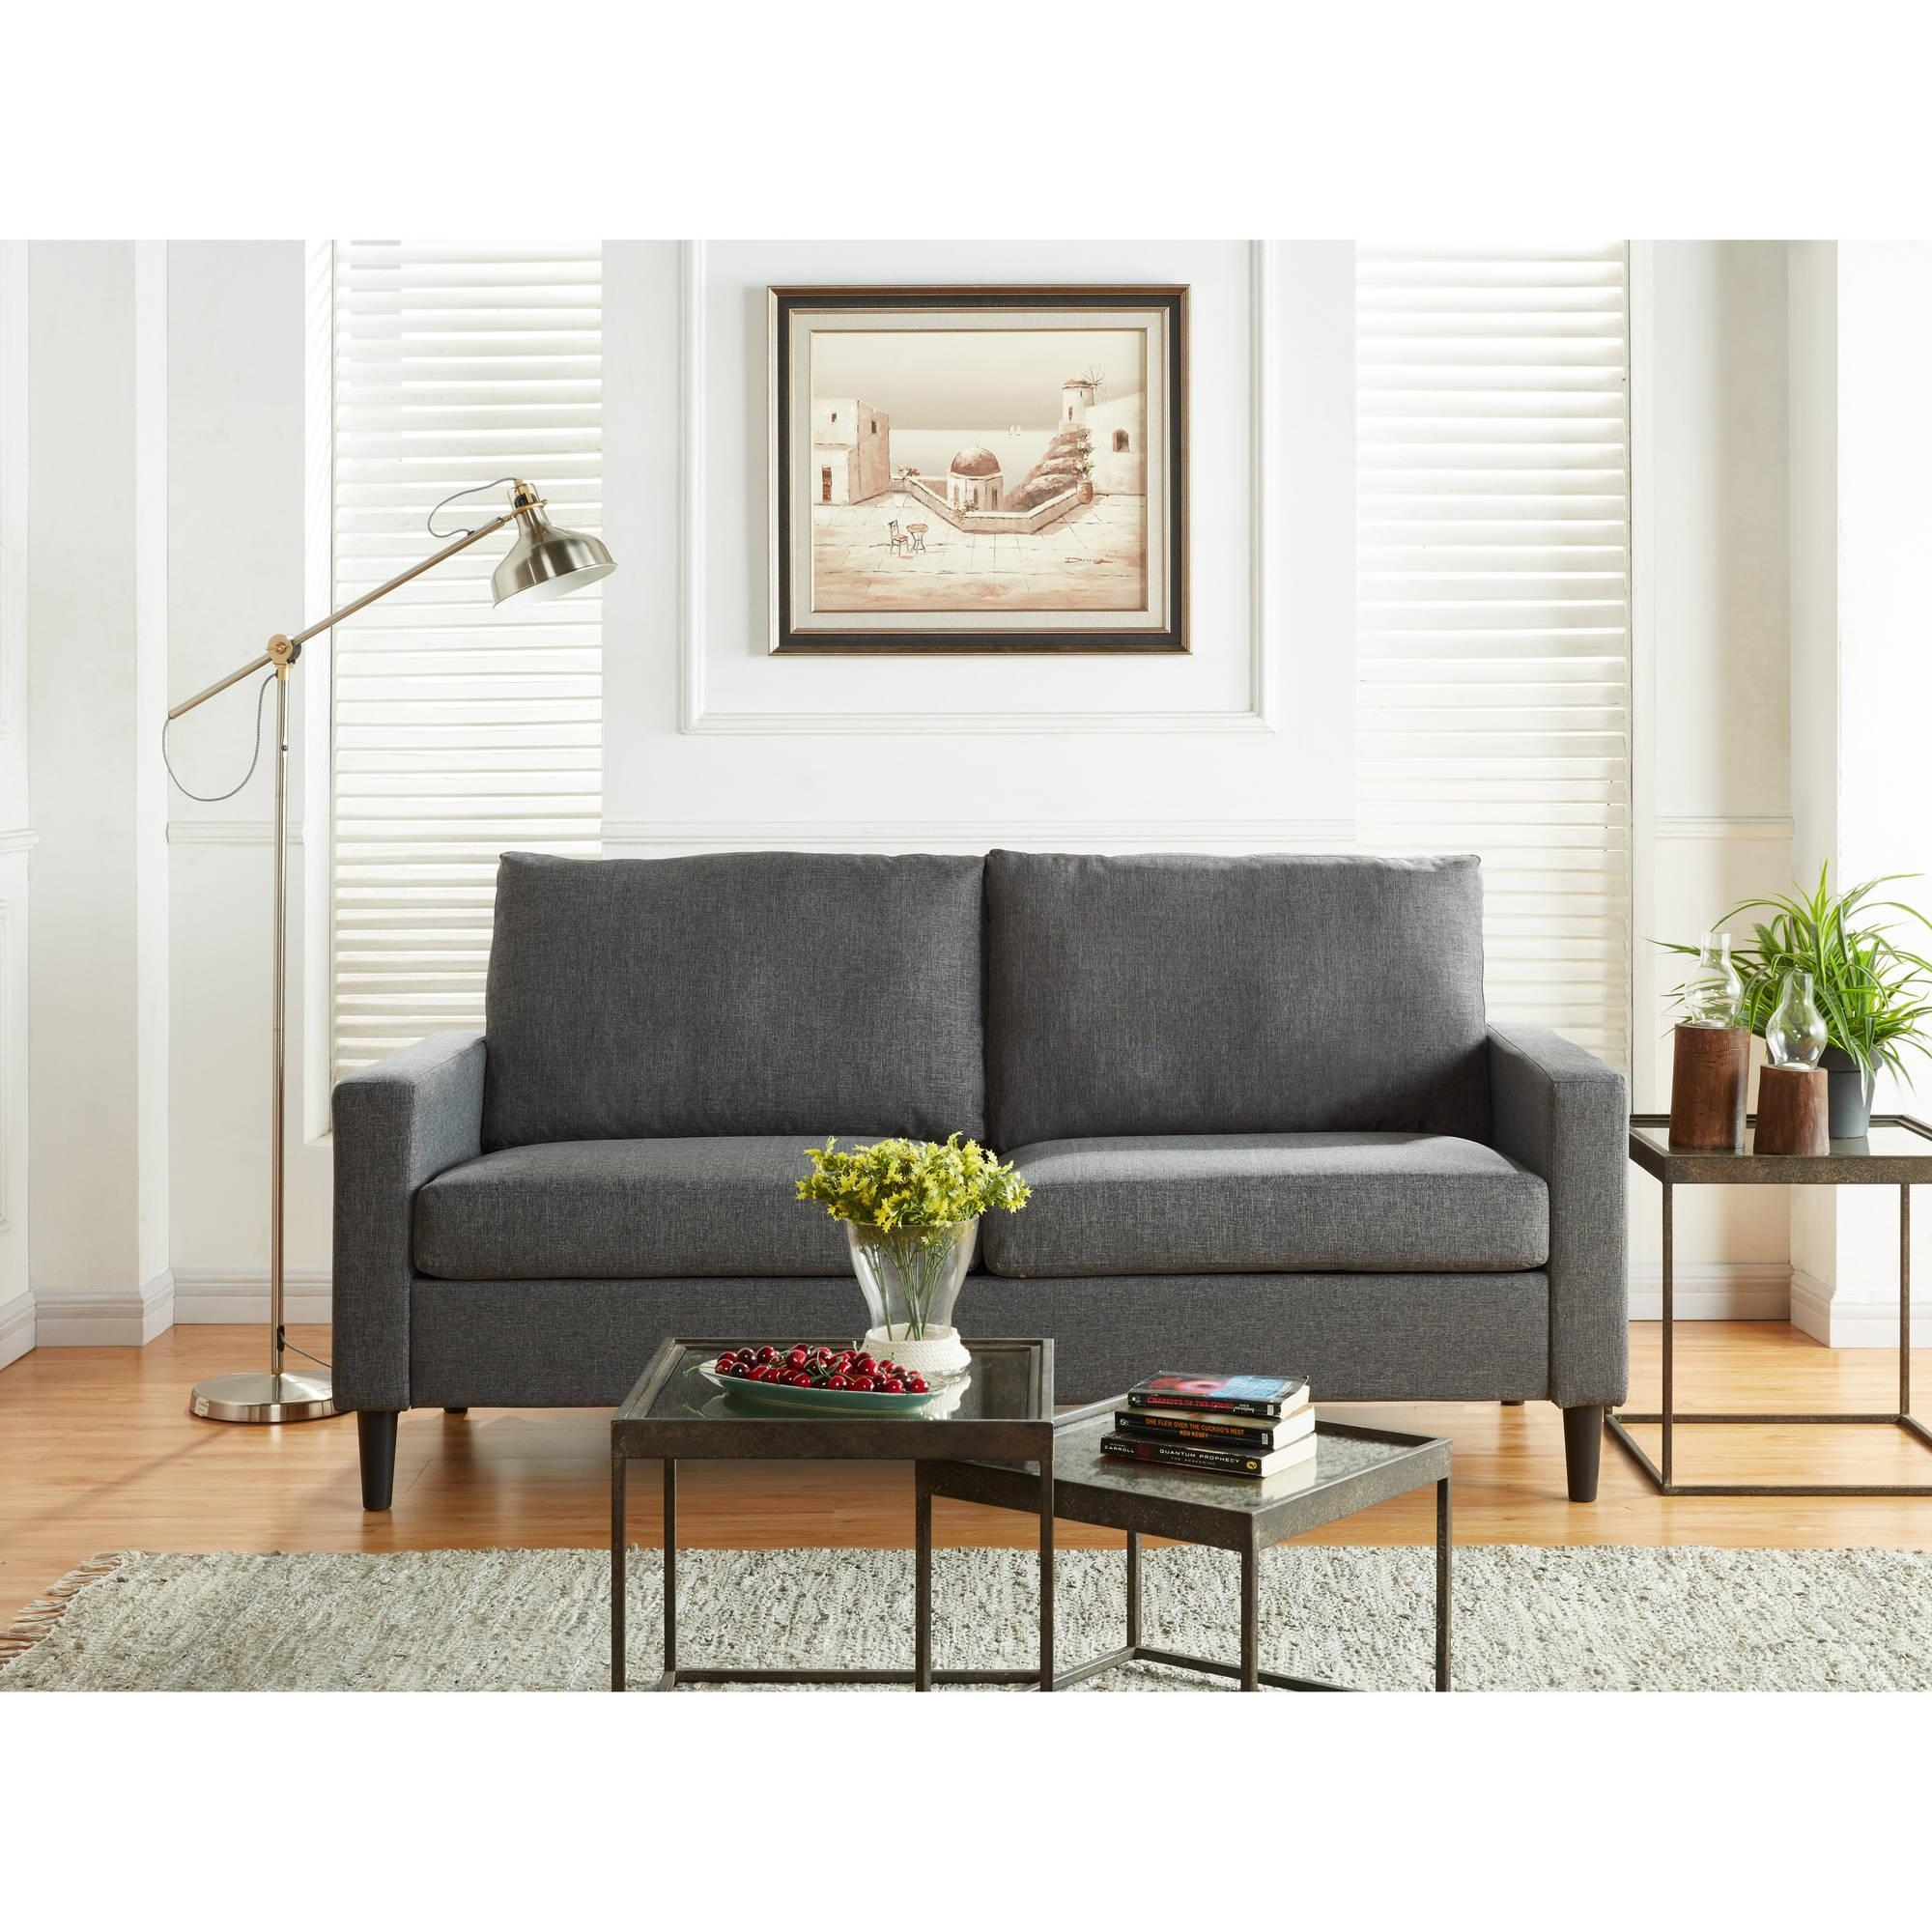 Mainstays Apartment Sofa, Multiple Colors – Walmart Throughout Mainstay Sofas (Image 7 of 20)